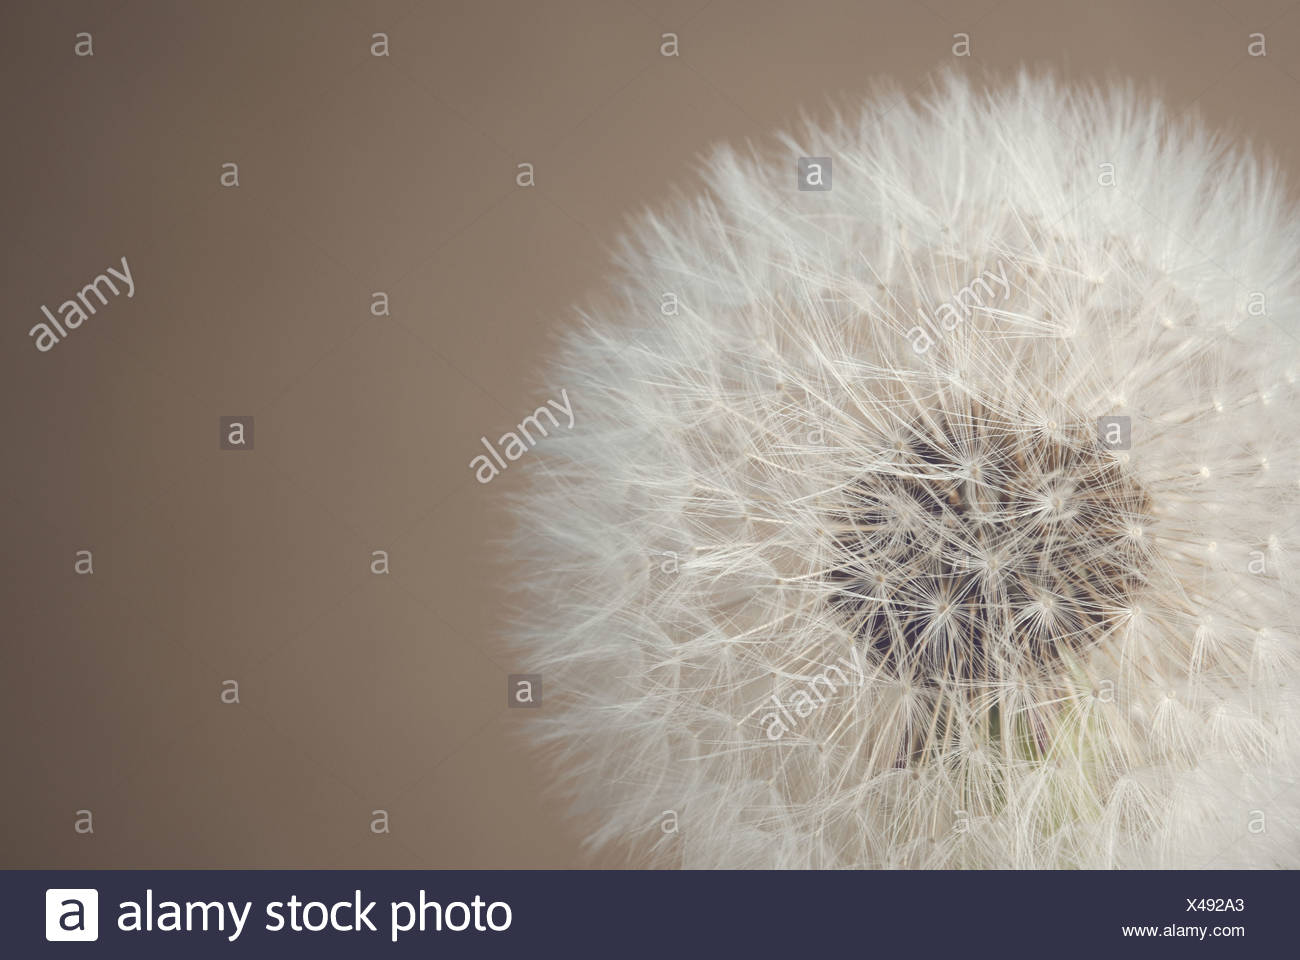 Close-up of a dandelion against a neutral background - Stock Image